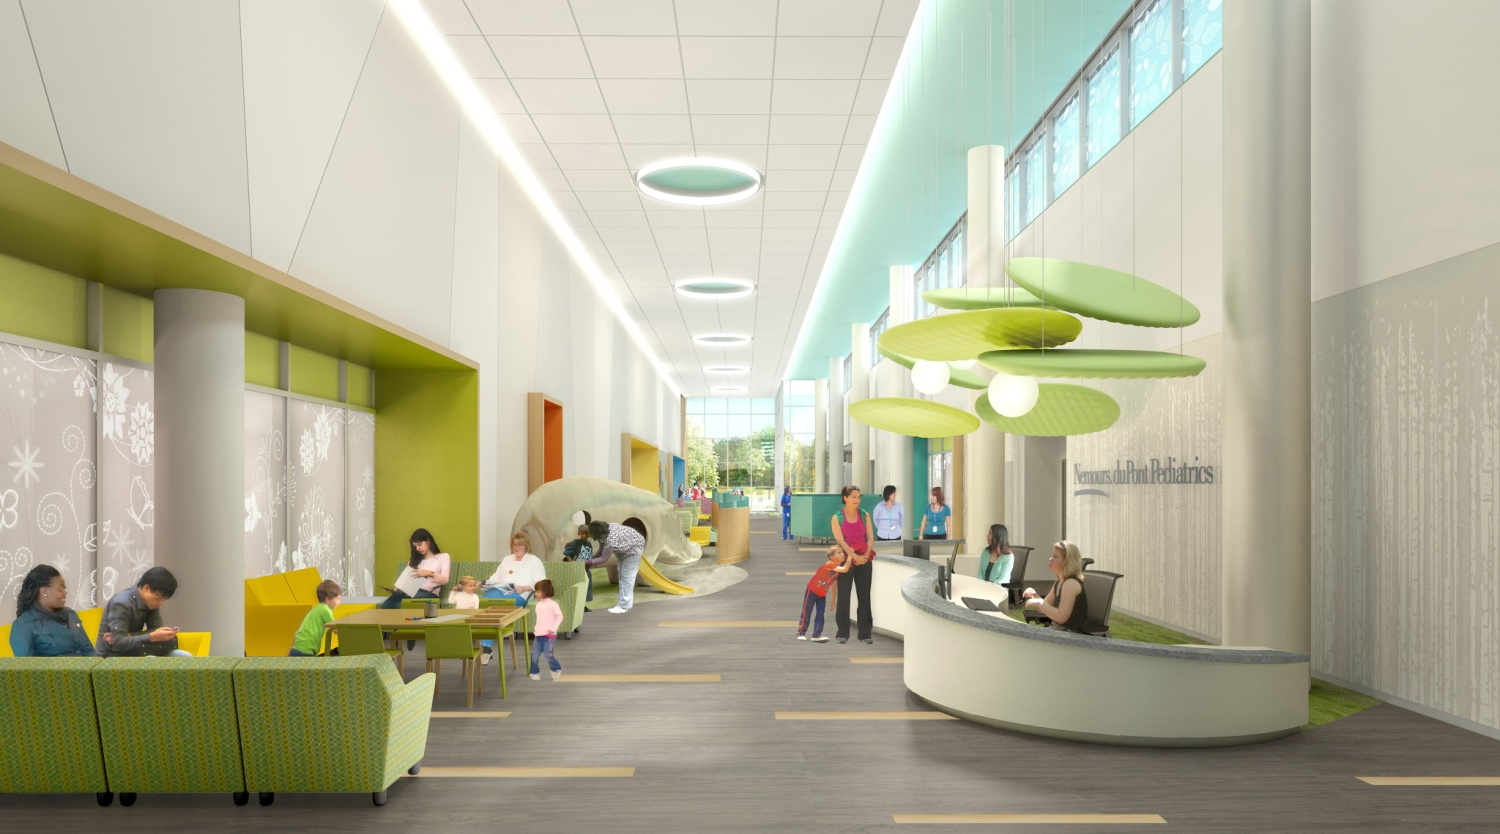 Top 10 Considerations For Designing A Pediatric Waiting Room